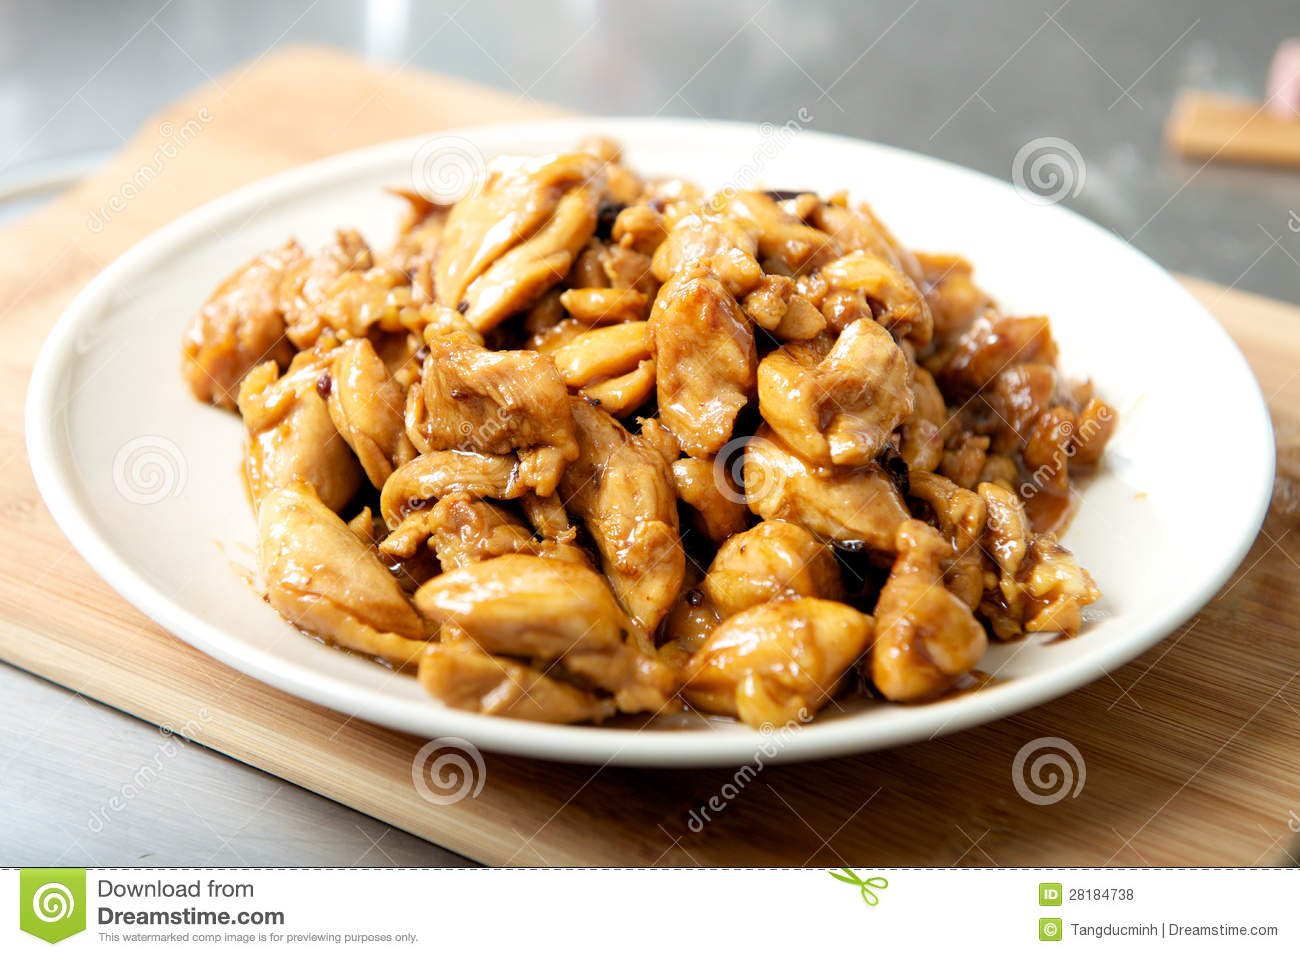 Delicious chinese food royalty free stock photos image 28184738 - Delicious chinese cuisine ...